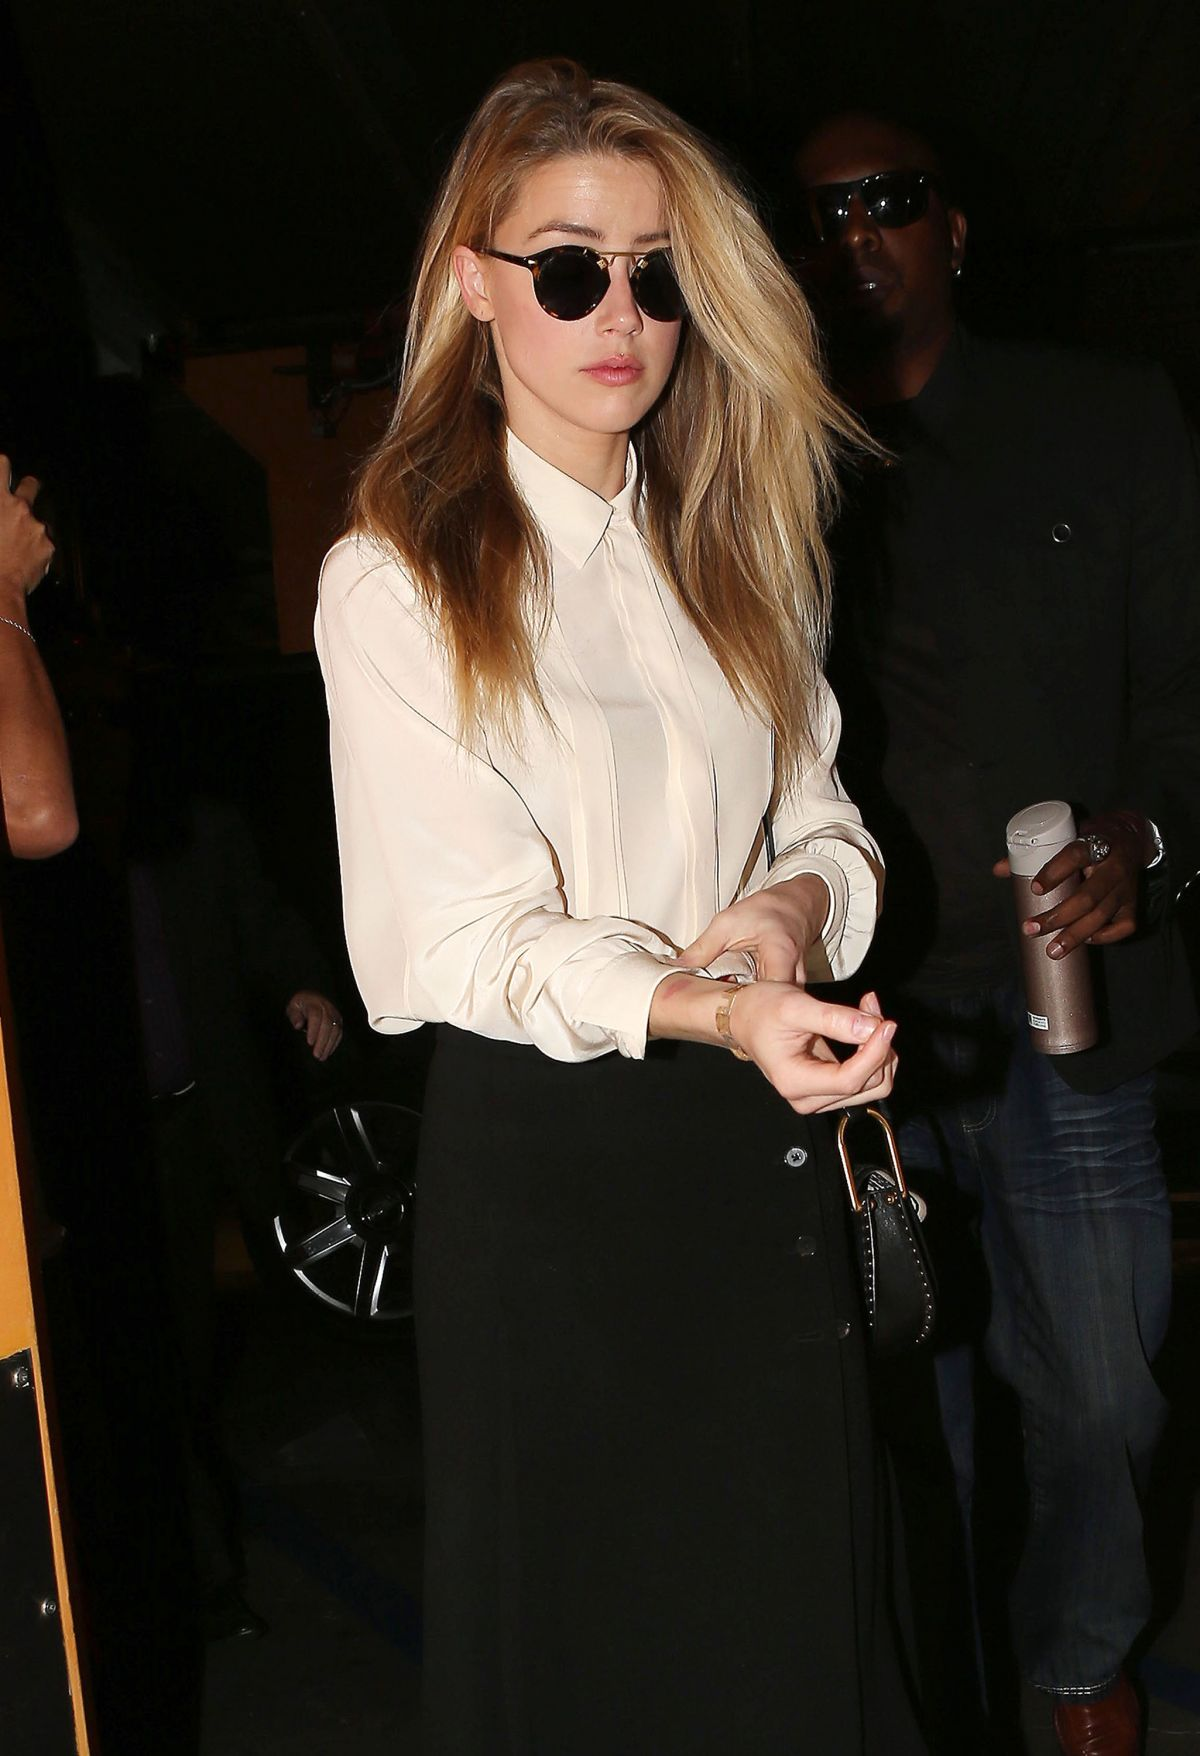 AMBER HEARD Arrives at Court in Century City for Divorce Proceedings to Johnny Depp 08/06/2016